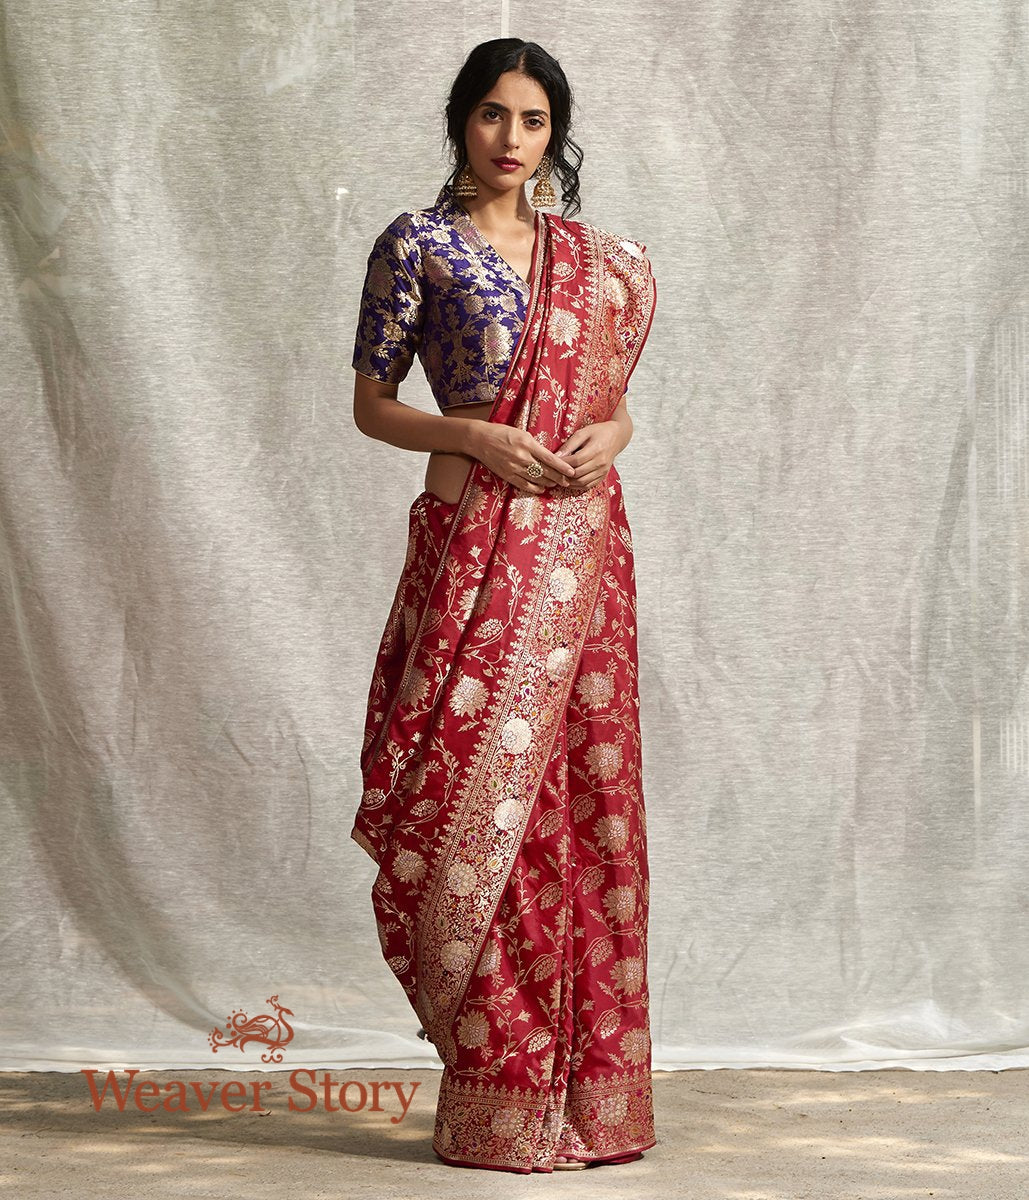 Handwoven Red Heavy Meenkari Jangla Saree with Sona Rupa Zari